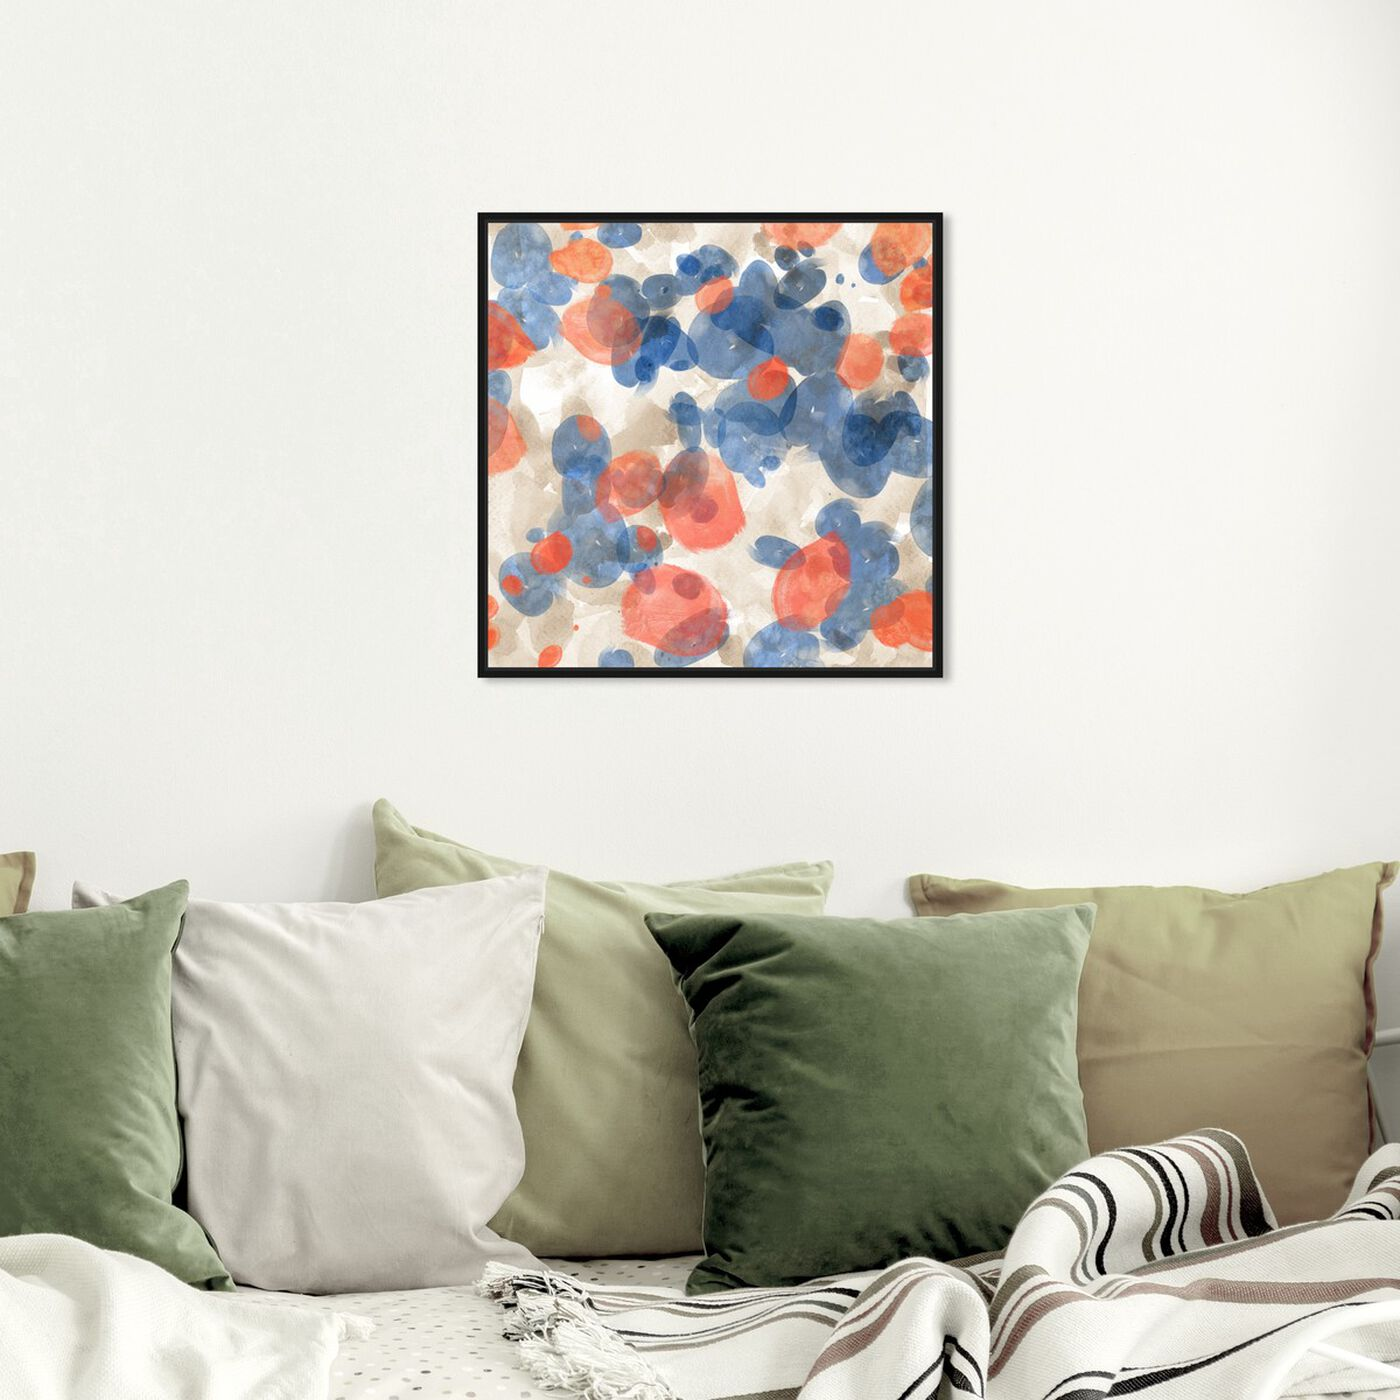 Hanging view of Floating Petals featuring abstract and paint art.